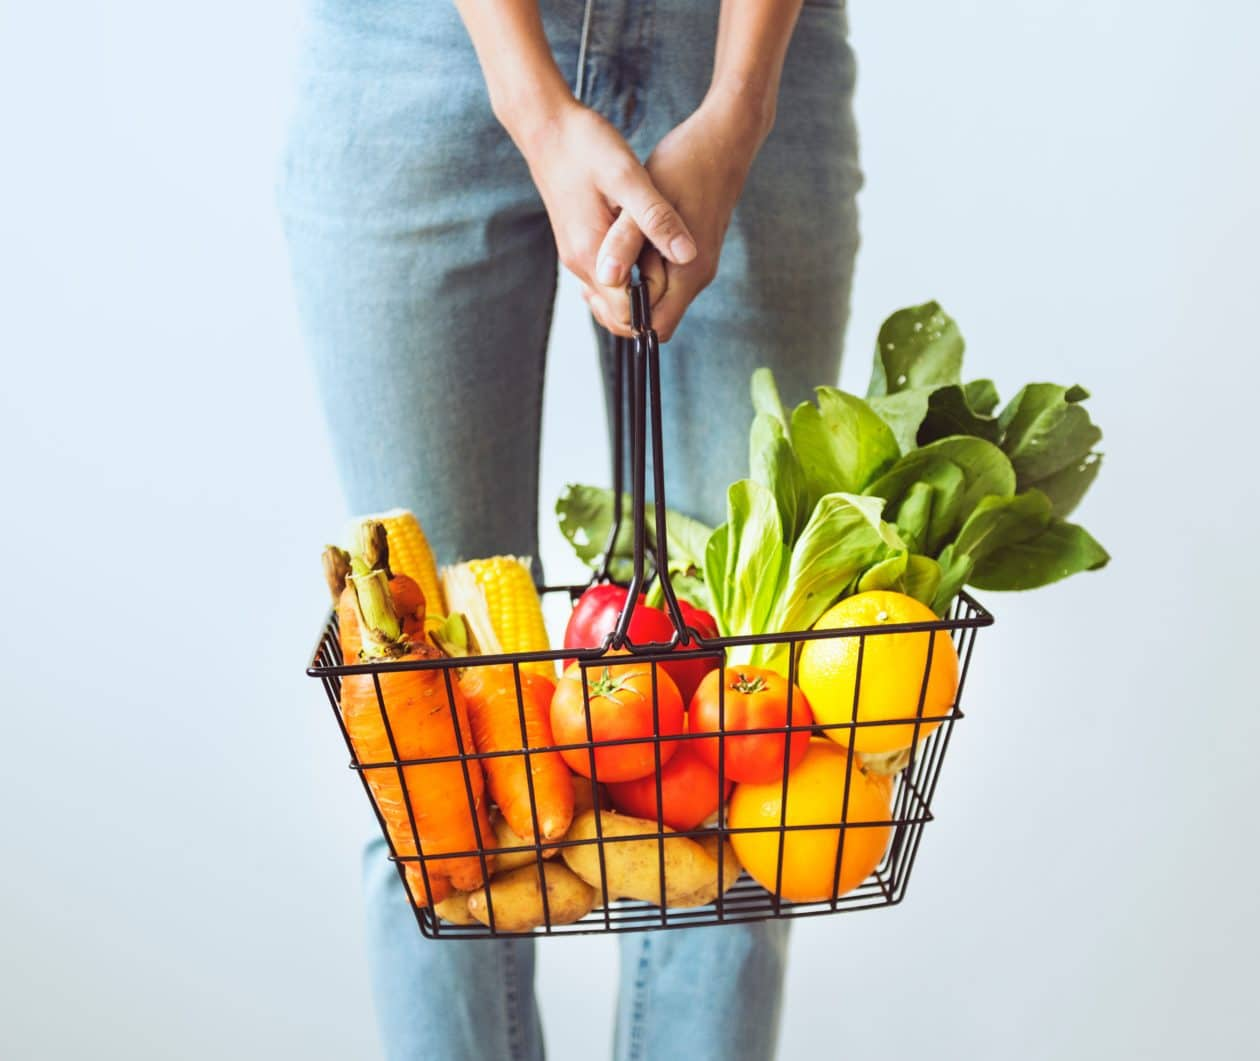 7 Tips to Avoid Fluoride While Grocery Shopping